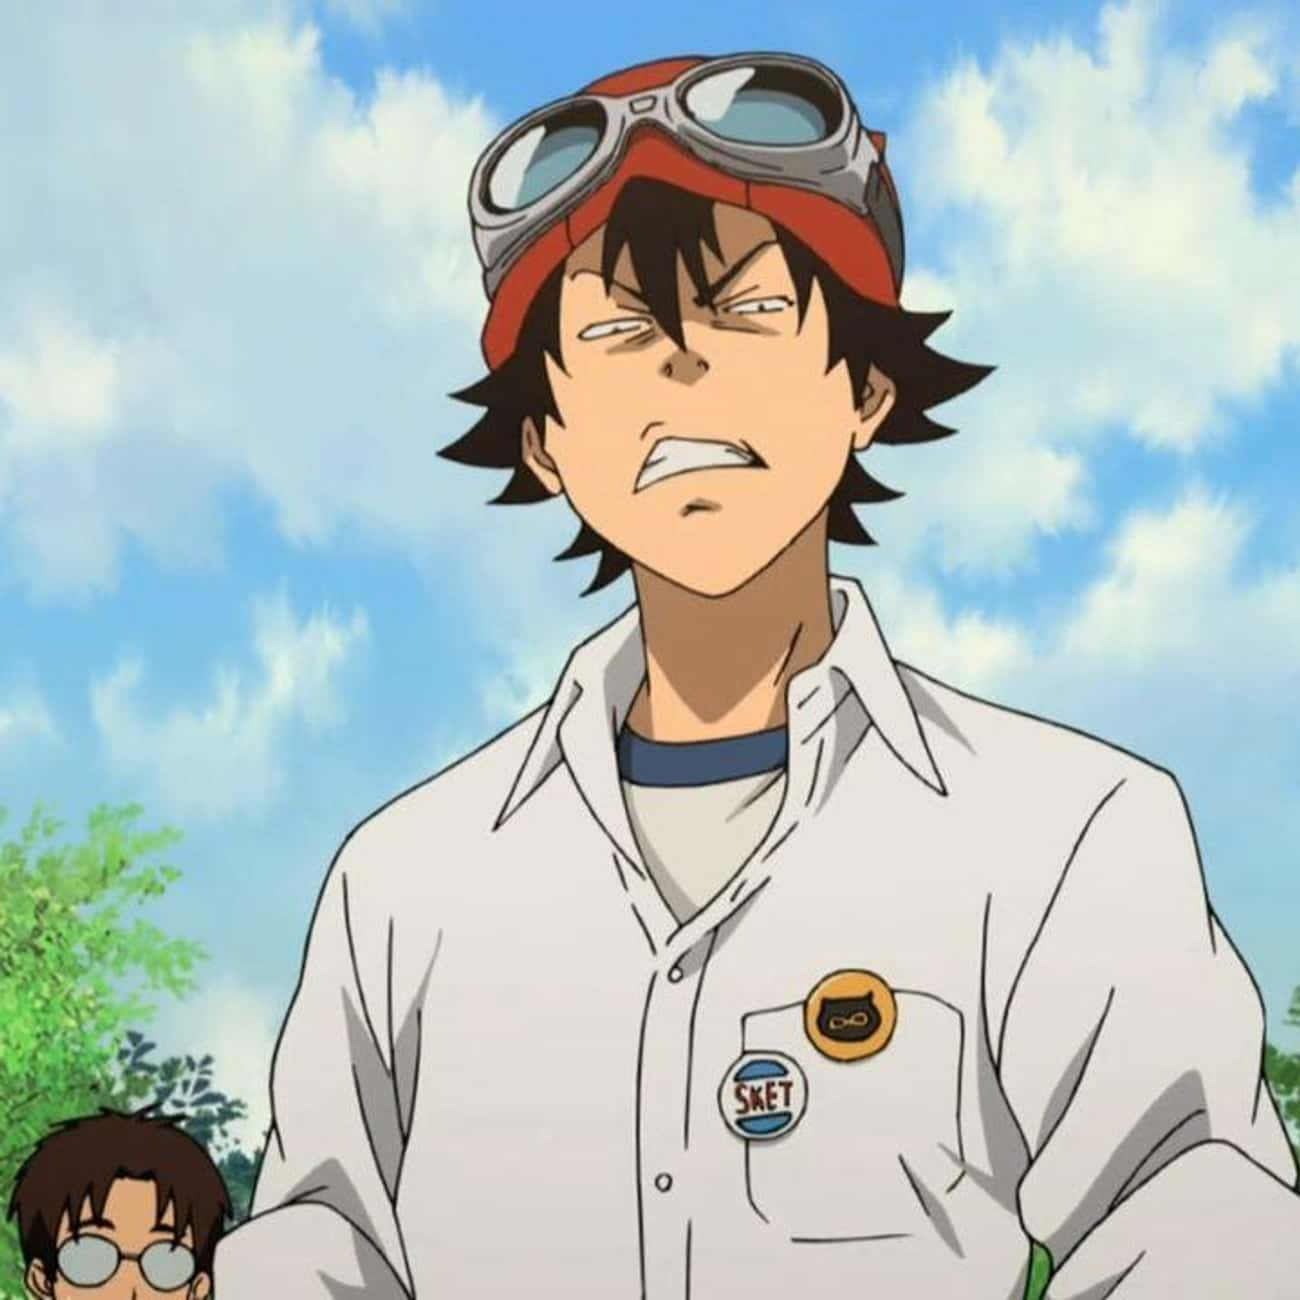 Sket Dance is listed (or ranked) 4 on the list The 13 Best Anime Like Gintama